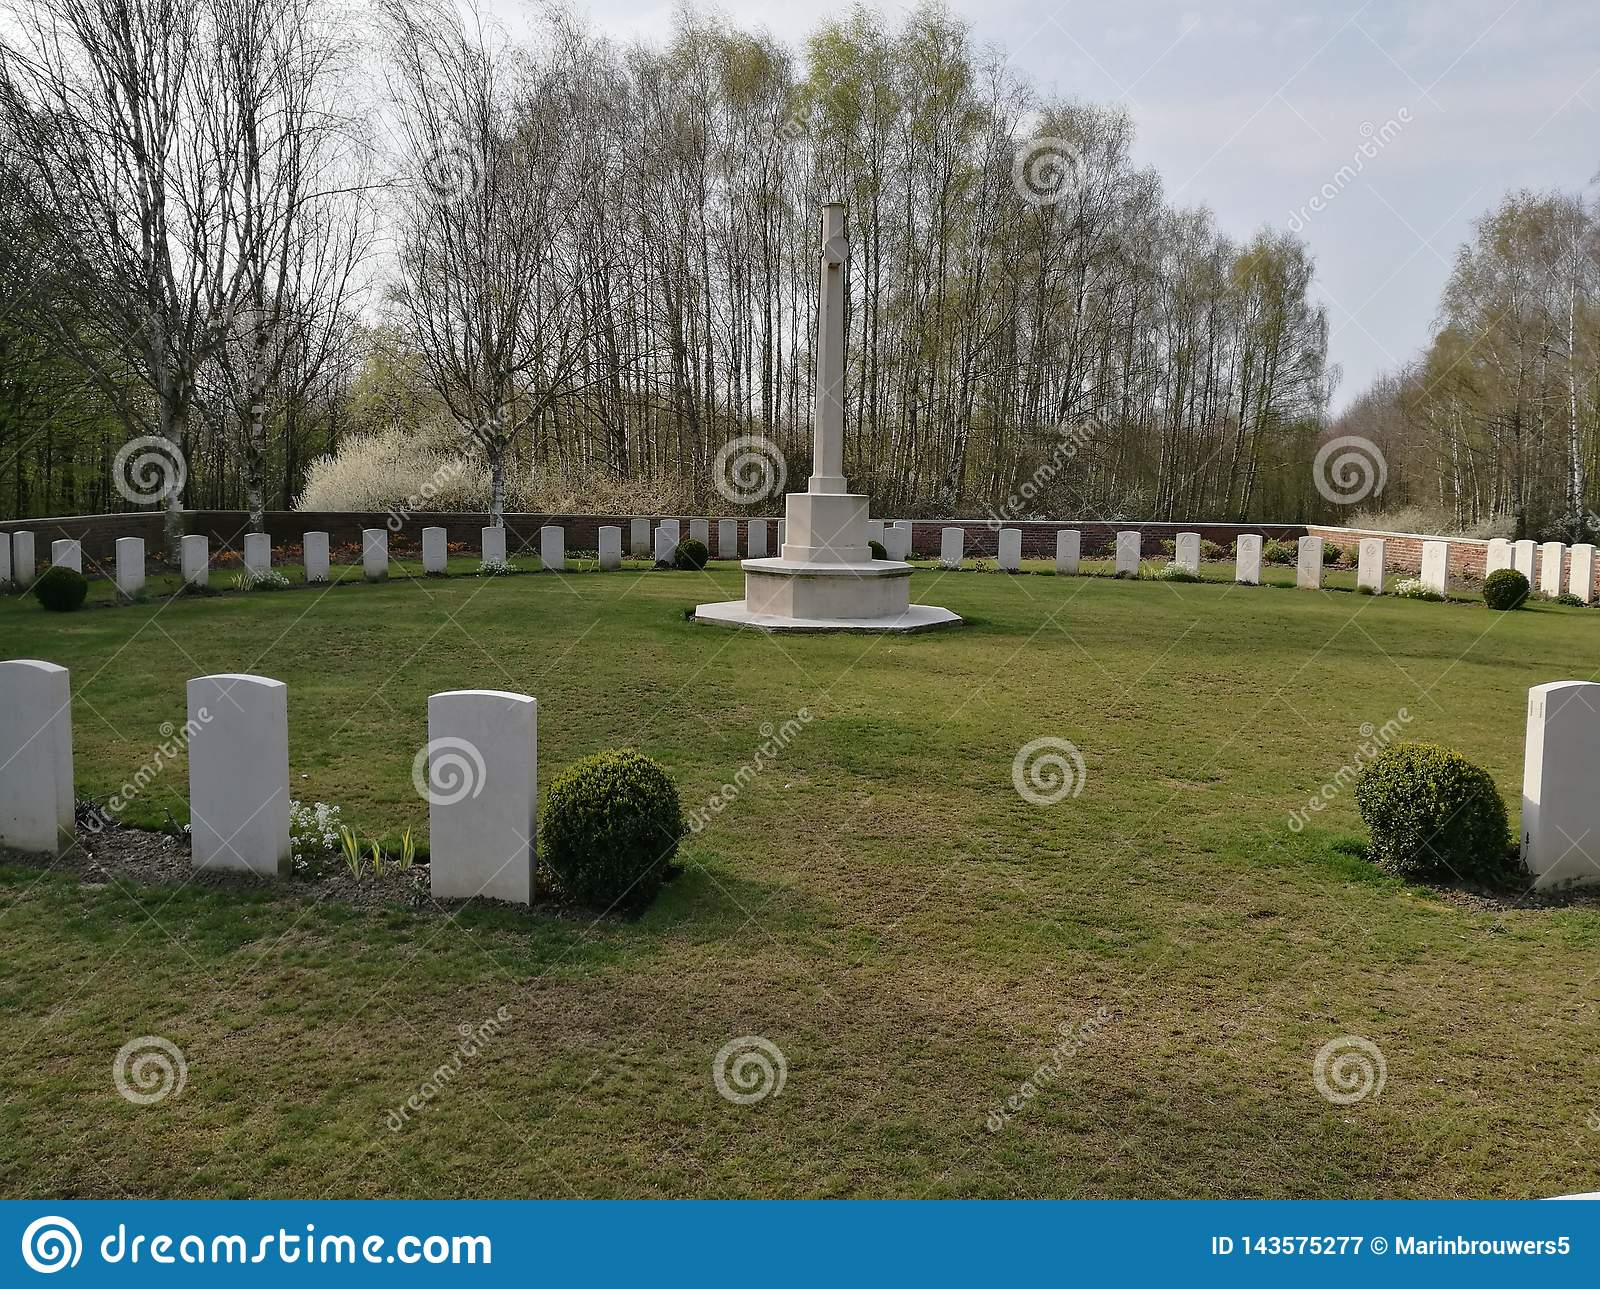 War graves from the first world war in Belgium in Ypres